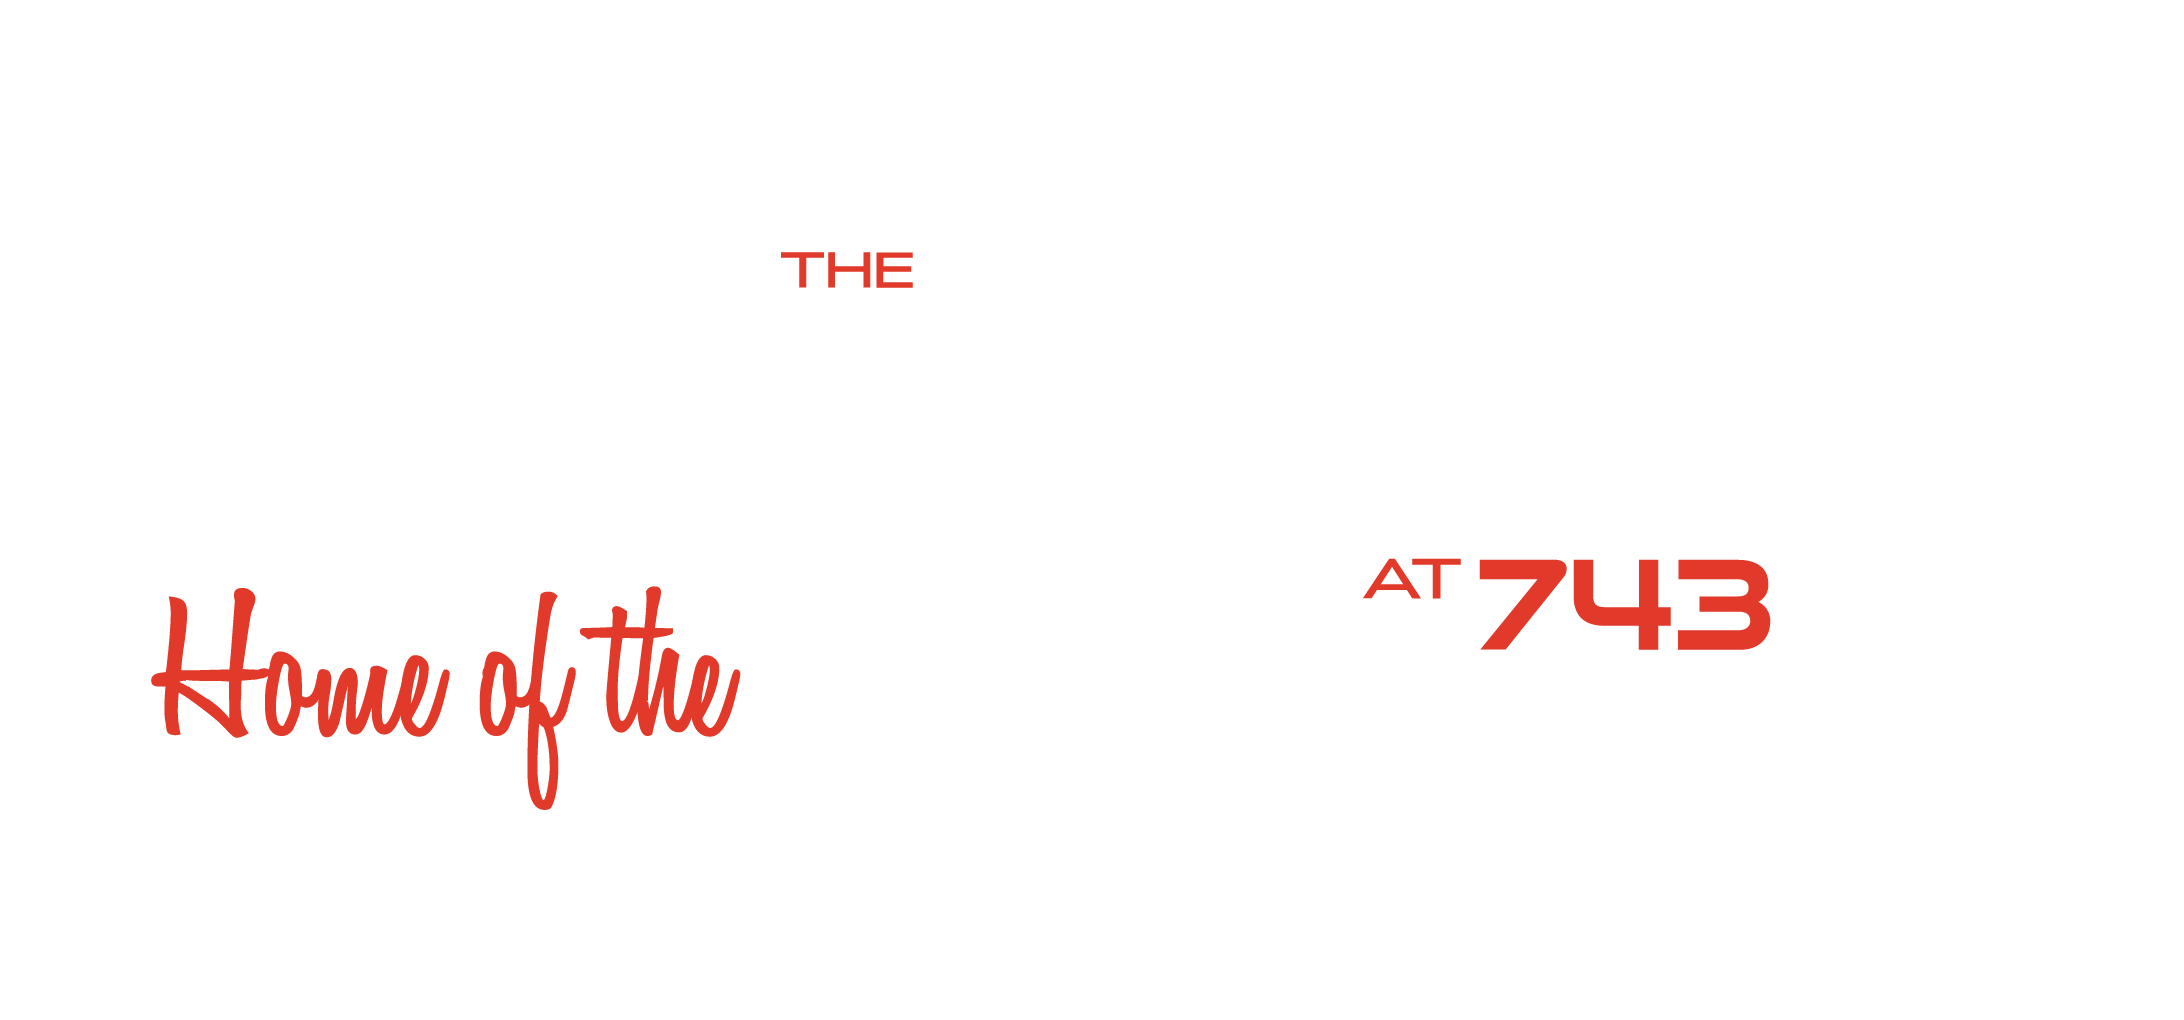 The Hangar at 743